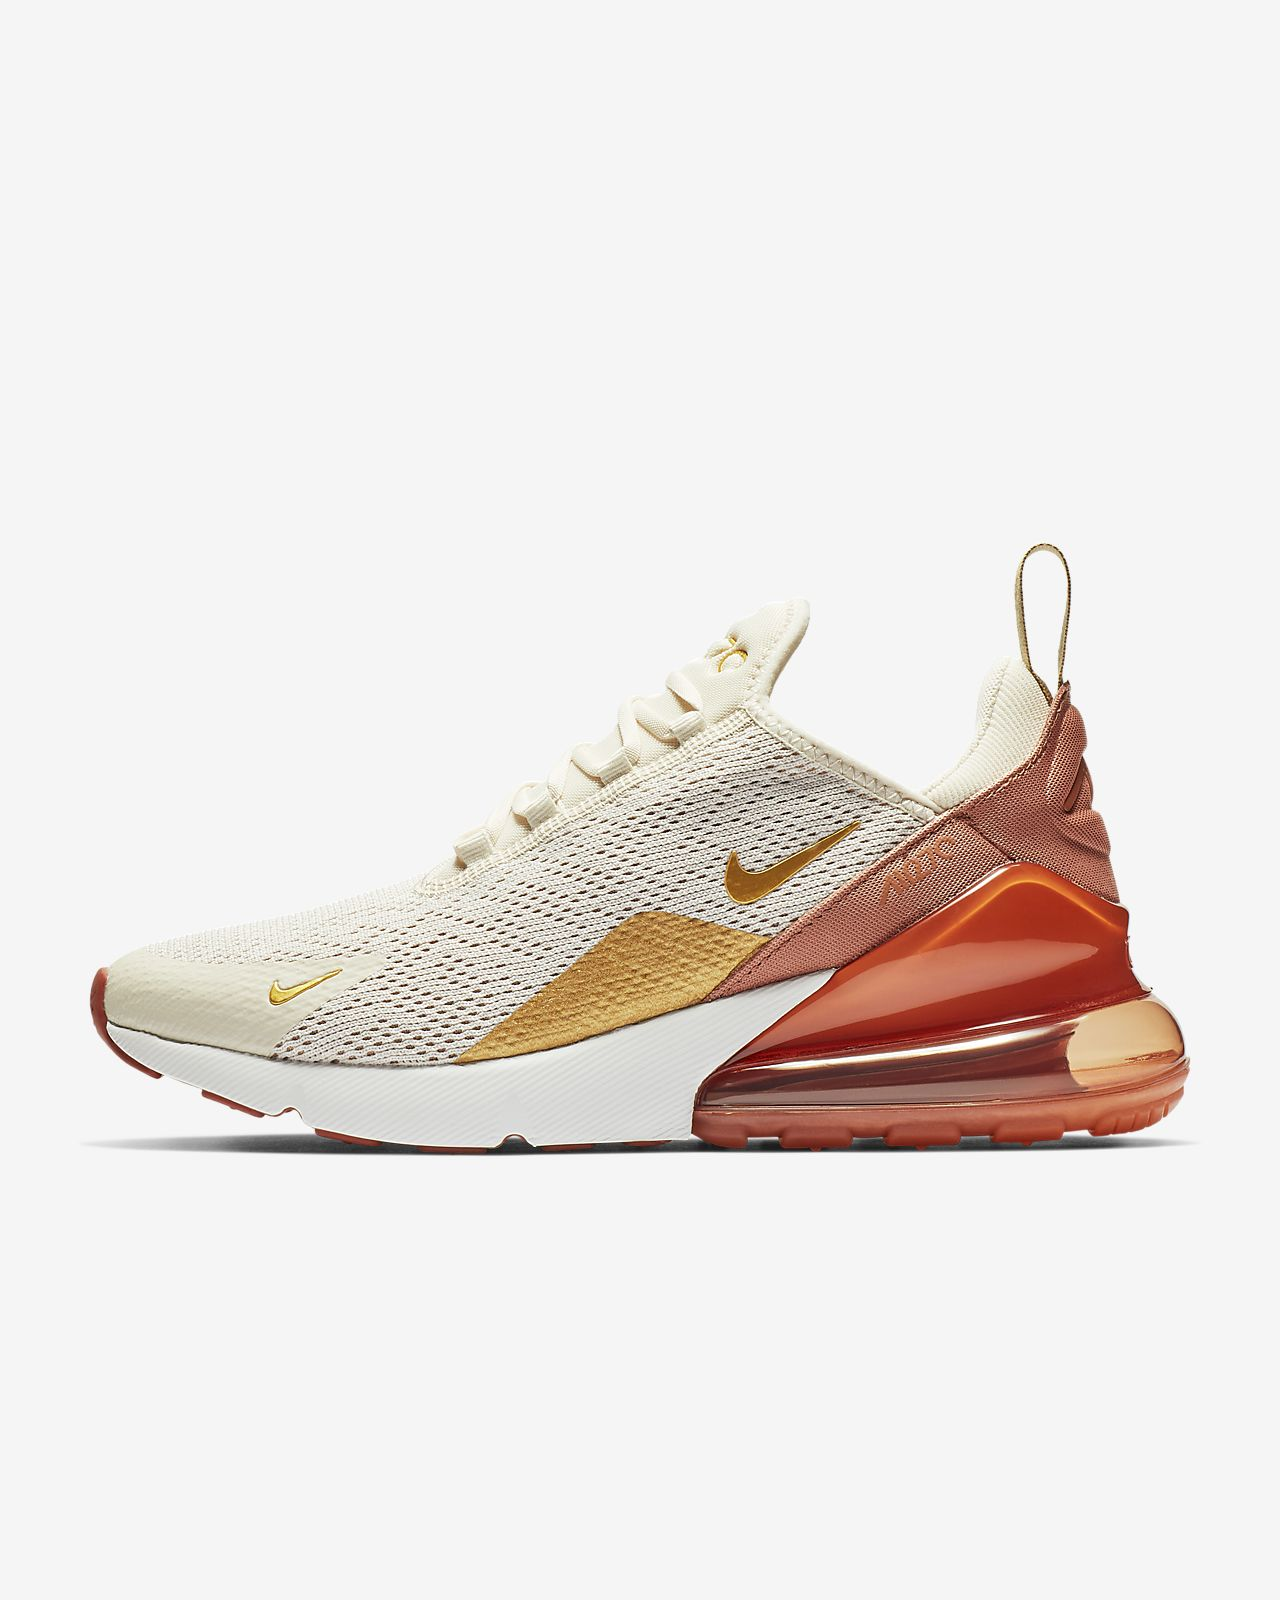 6112f798fc1 Nike Air Max 270 Women s Shoe. Nike.com